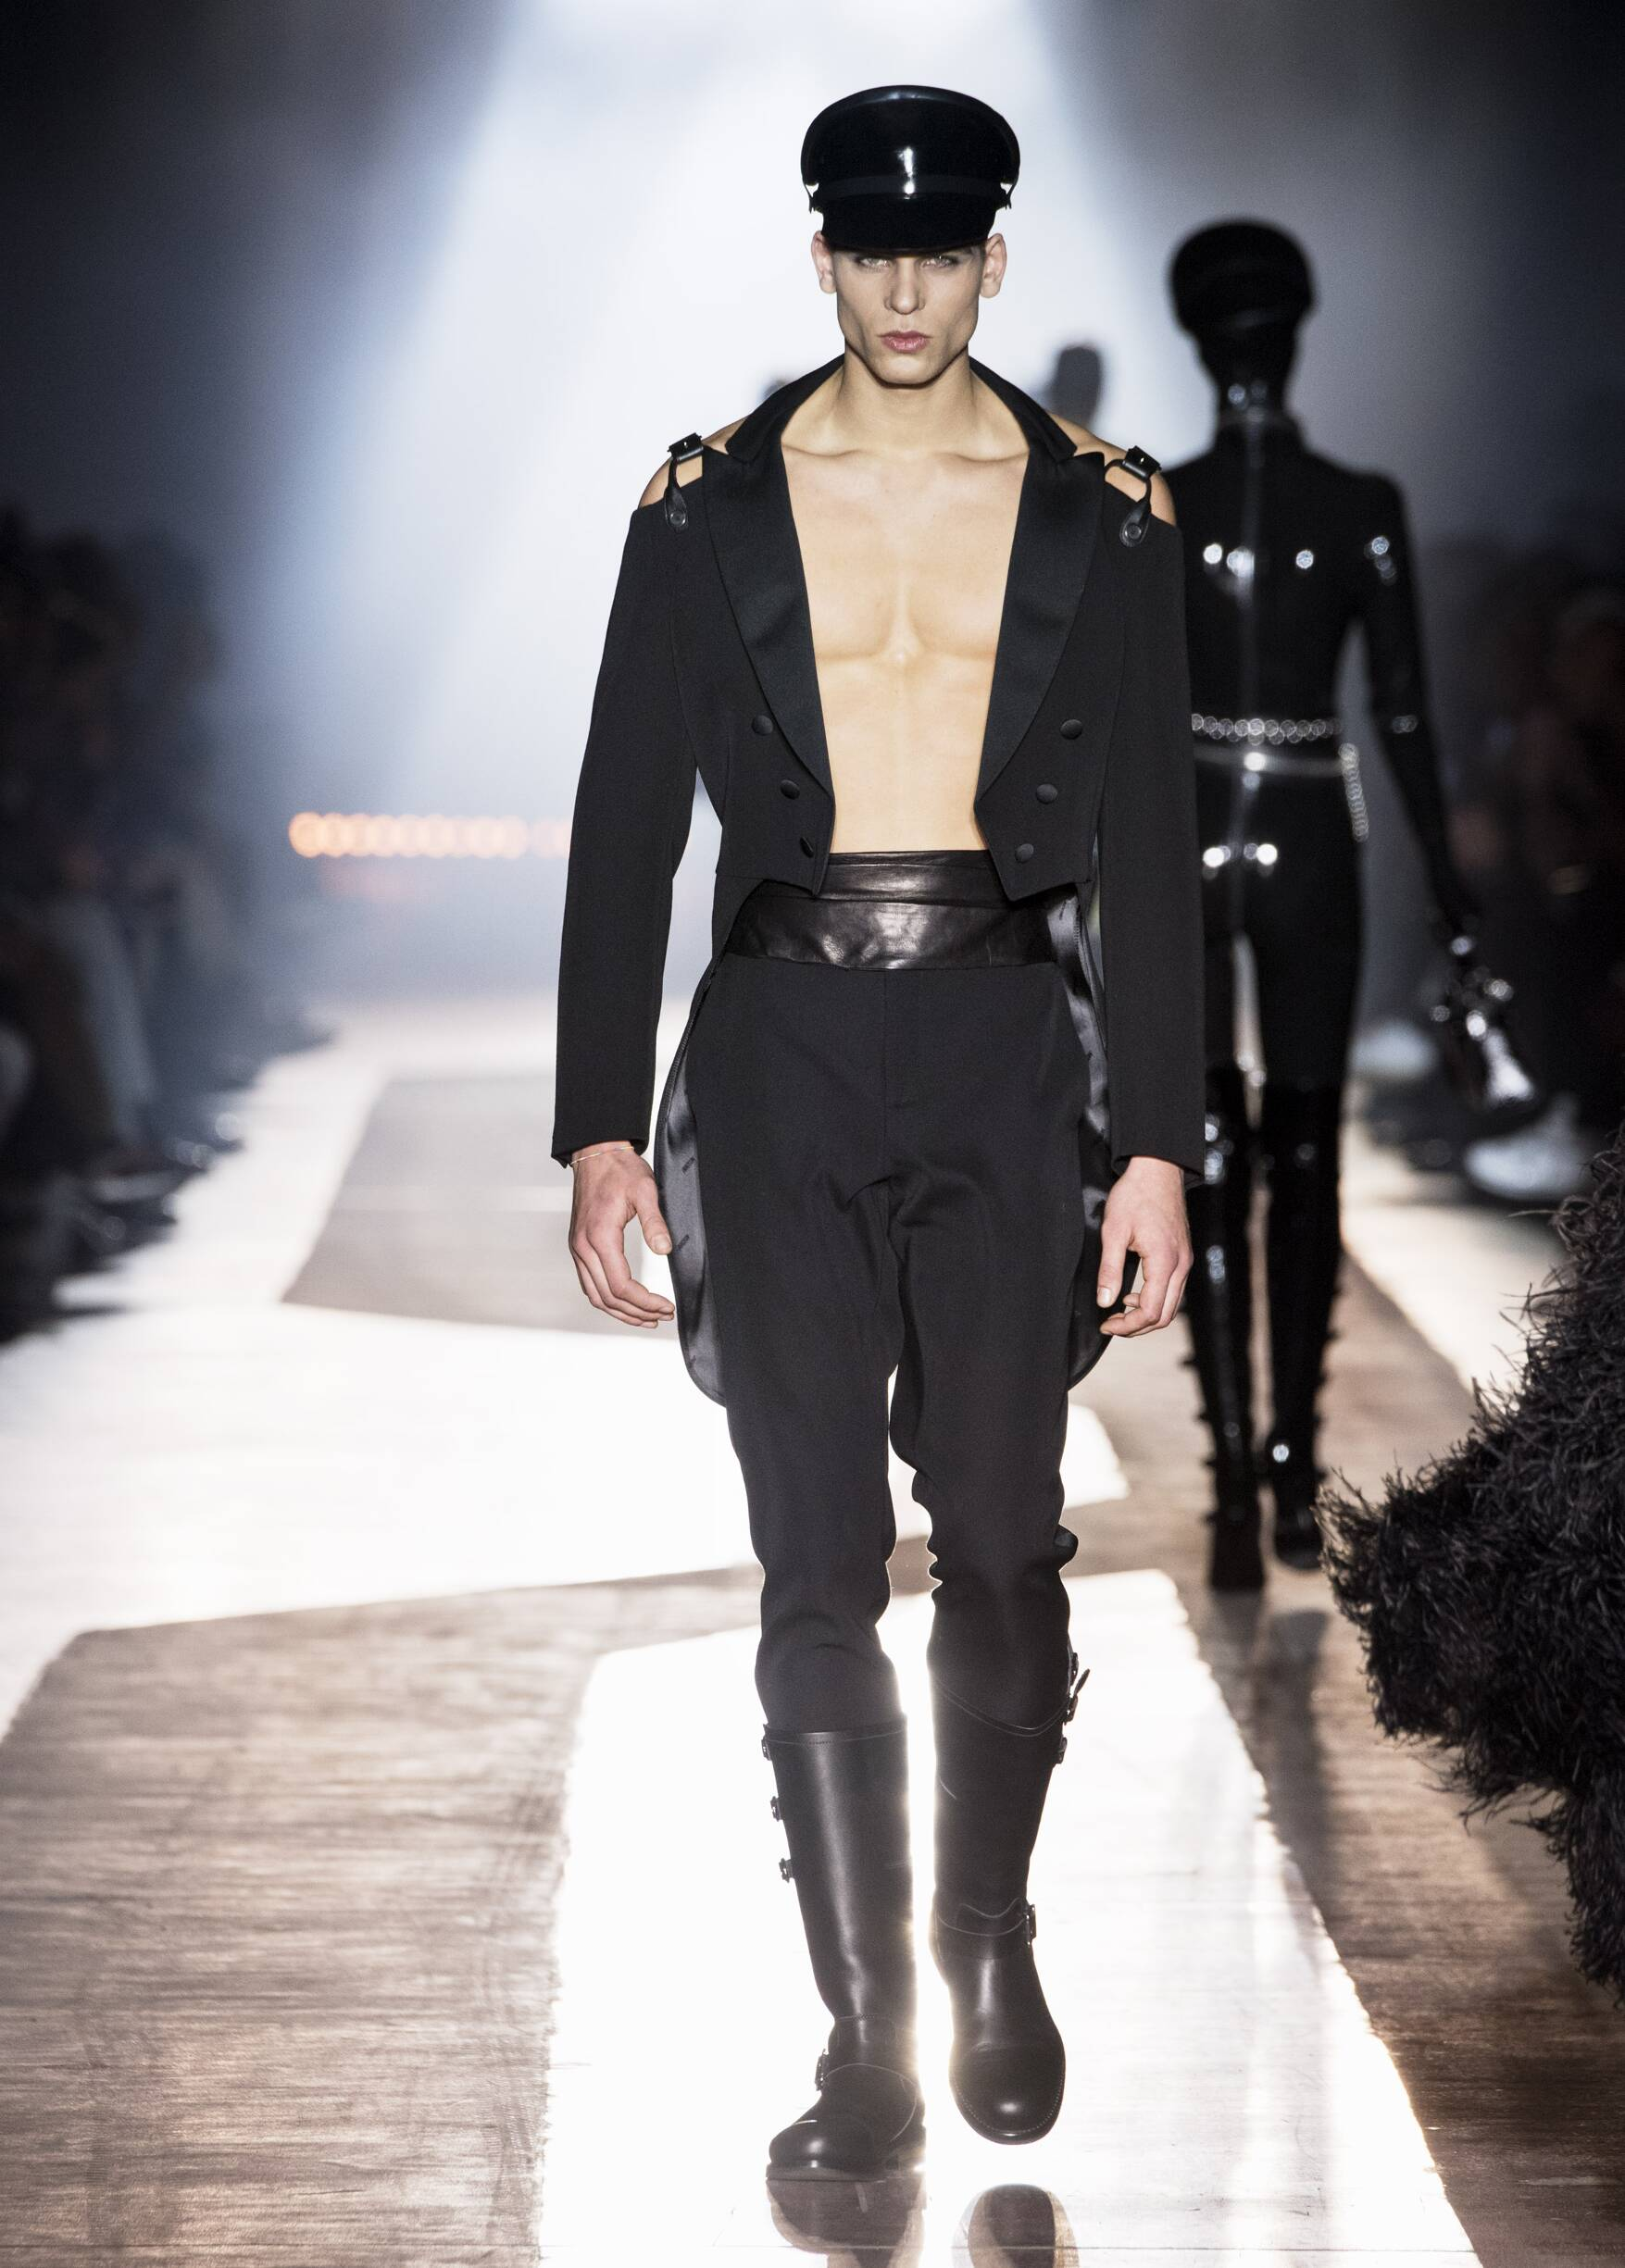 Catwalk Moschino Man Fashion Show Winter 2018